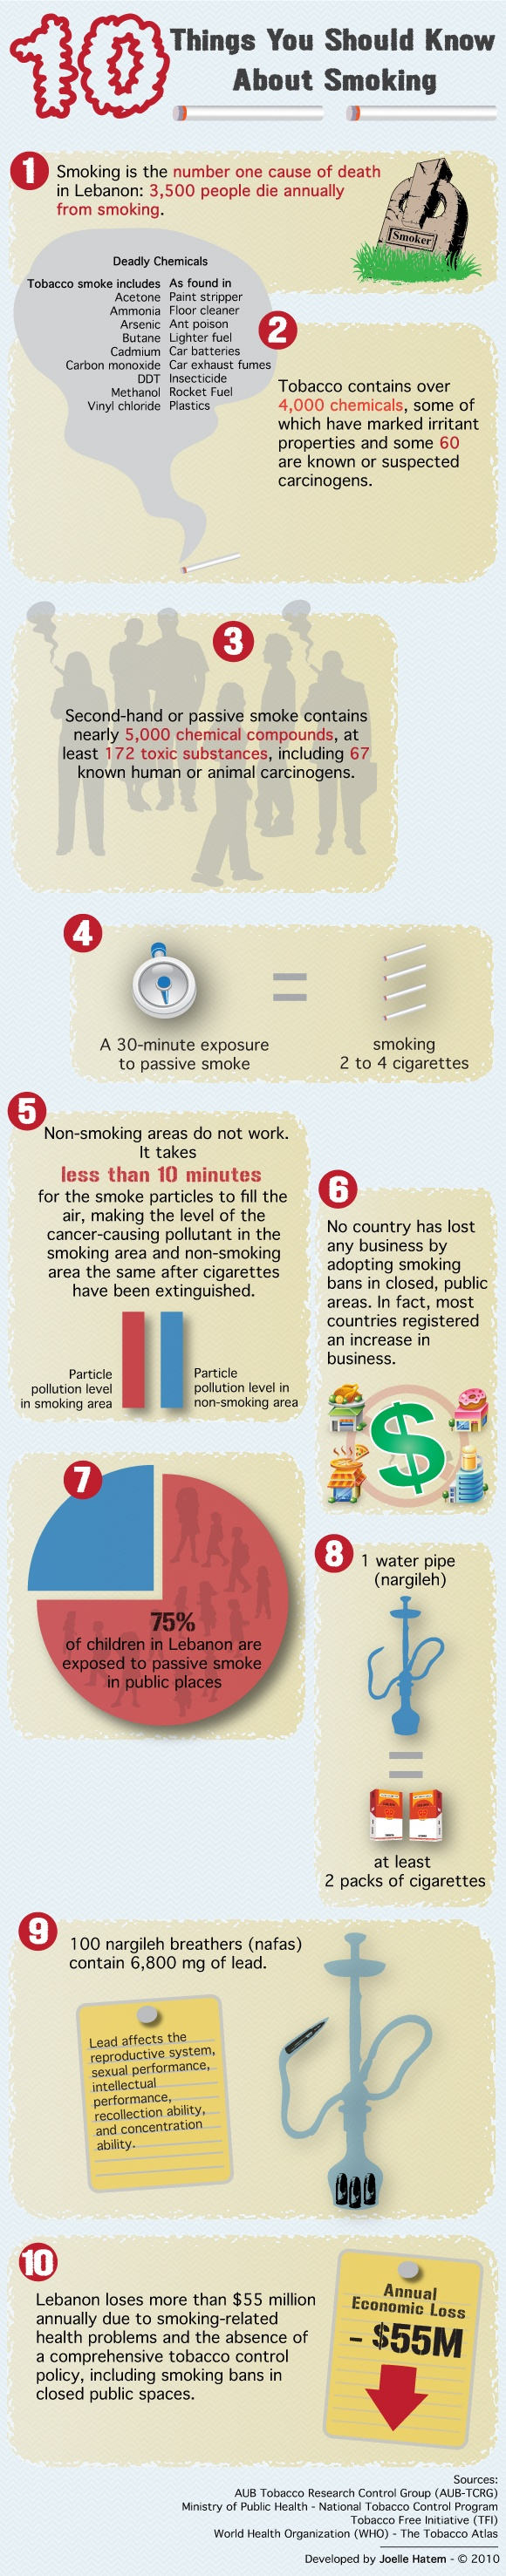 health promotion for smoking cessation Philosophies of health promotion provide a framework for exploring our rationale and justification for wanting to change health- related behaviour.